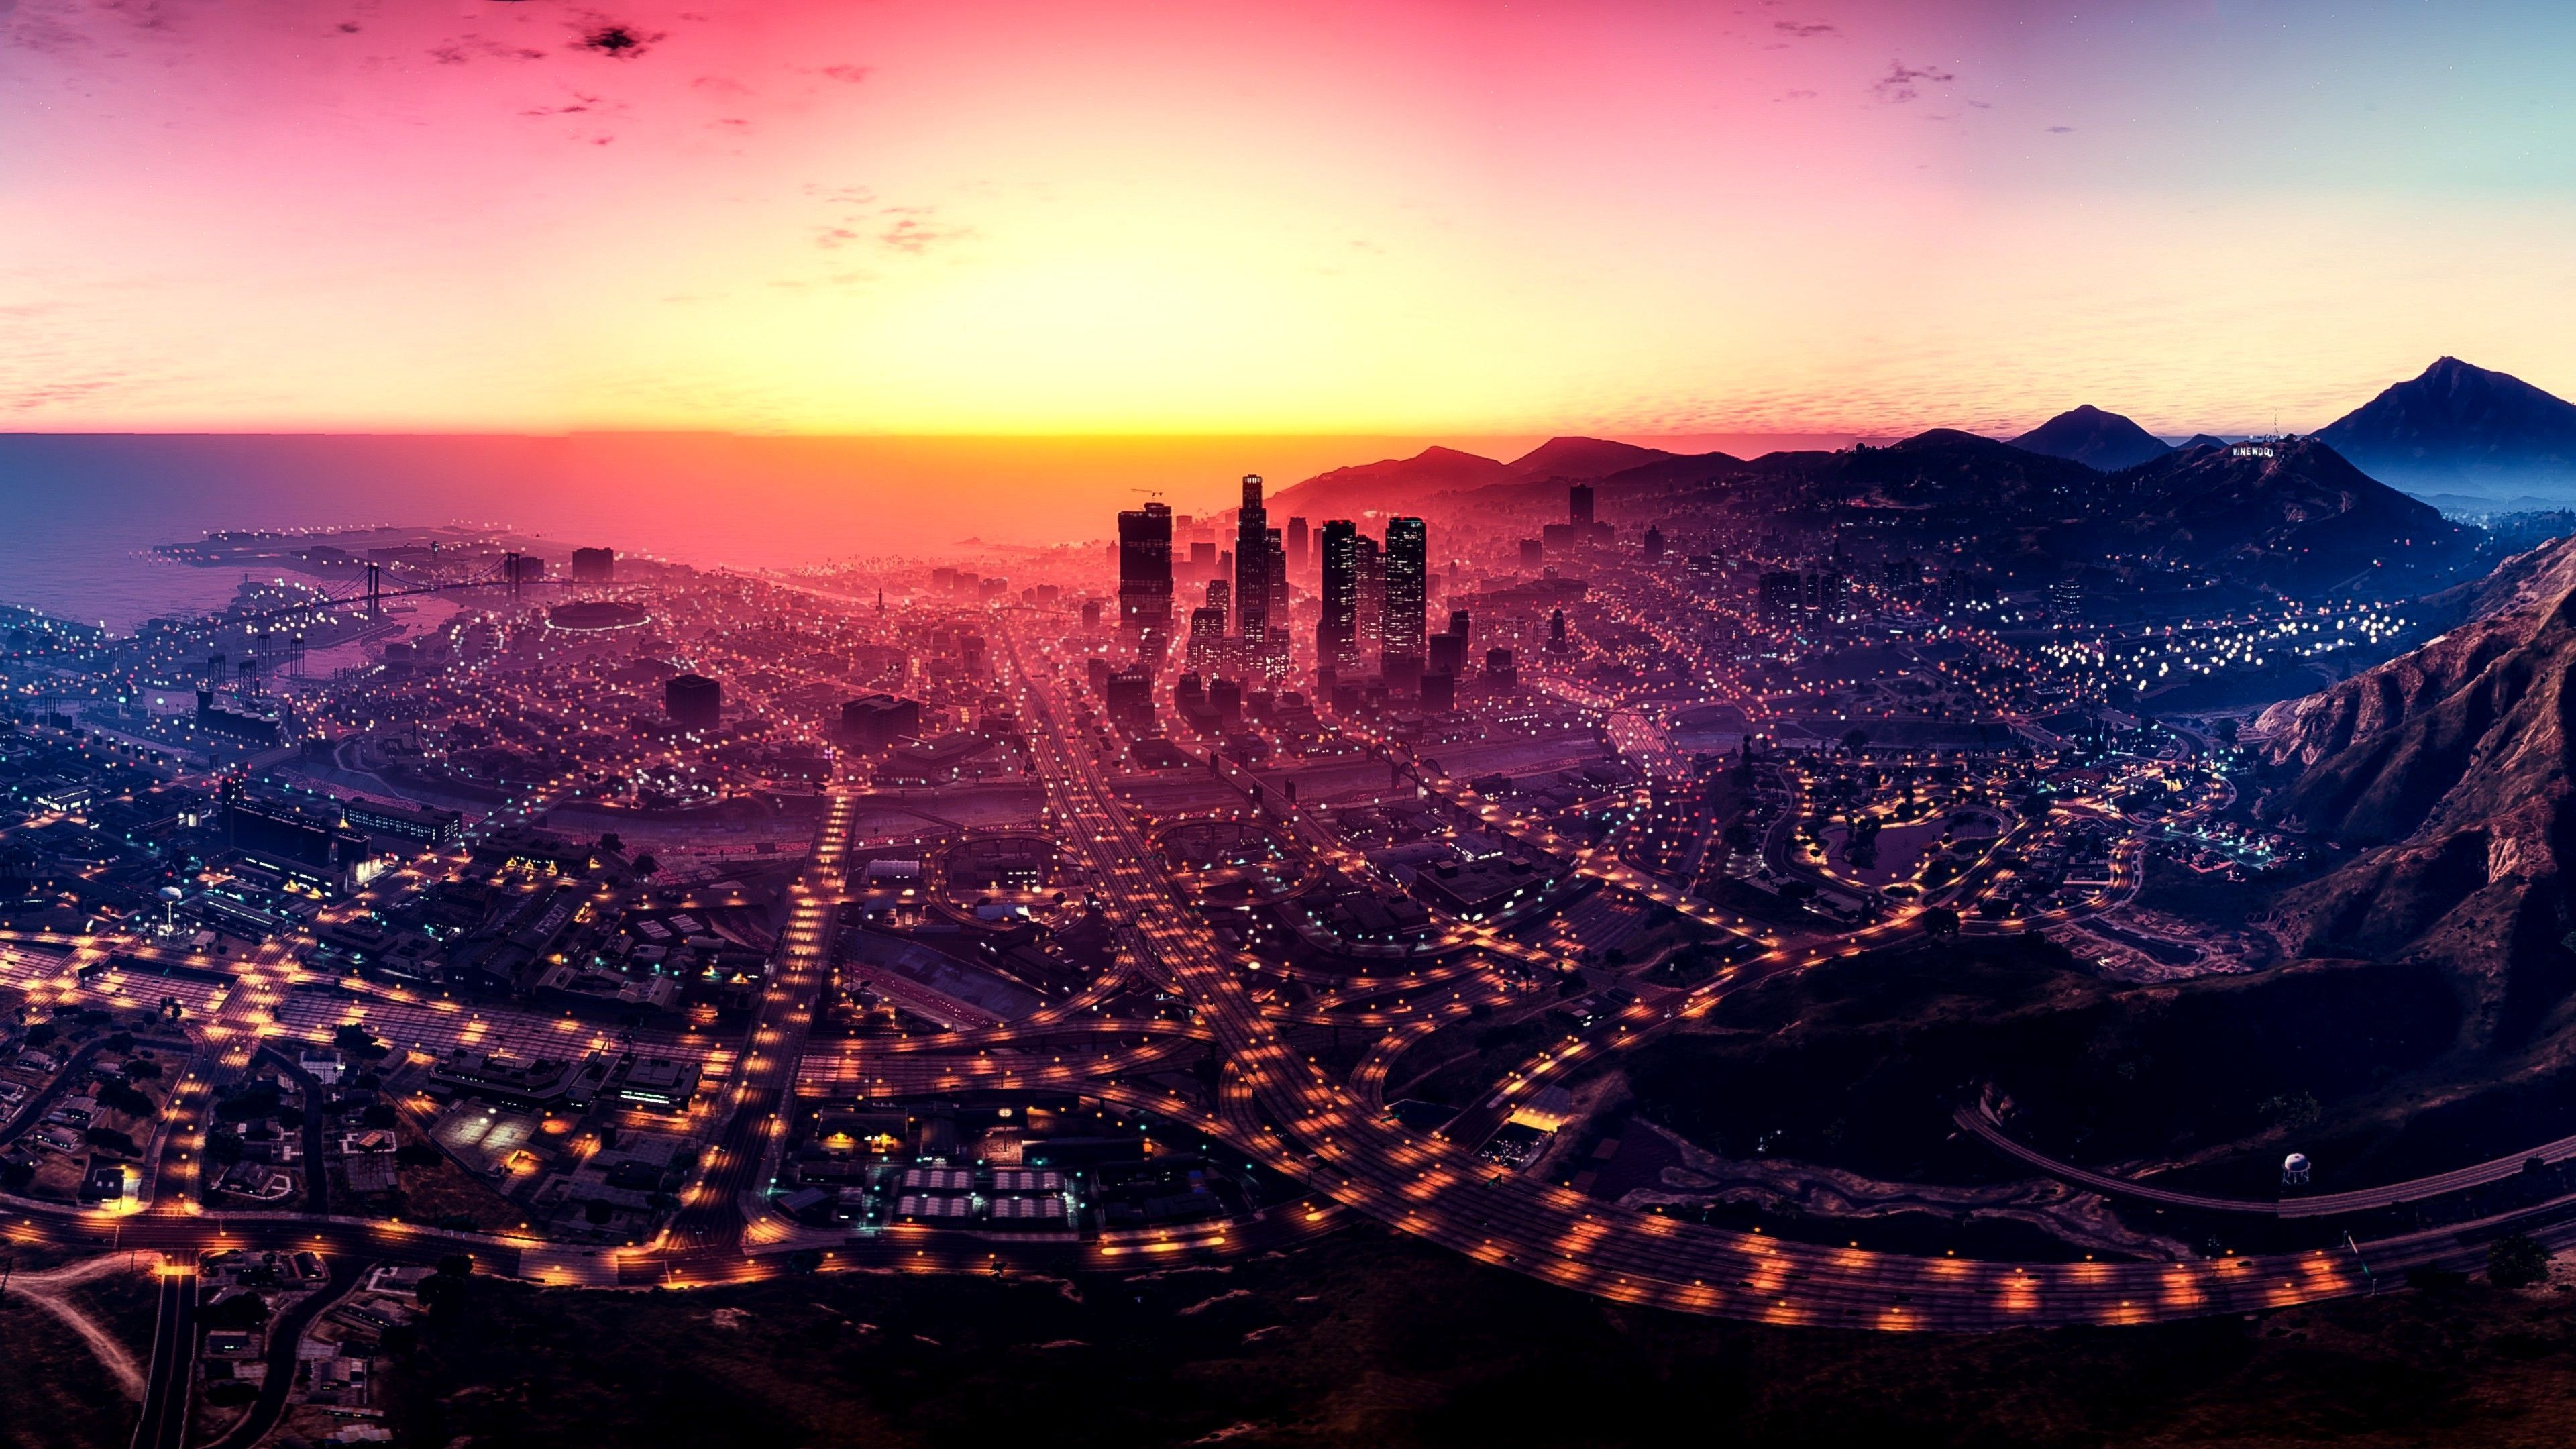 Wallpaper 4k Pc Gta V Ideas Wallpaper Gta Ideas Wallpaper 4k In 2020 Grand Theft Auto Gta Rockstar Games